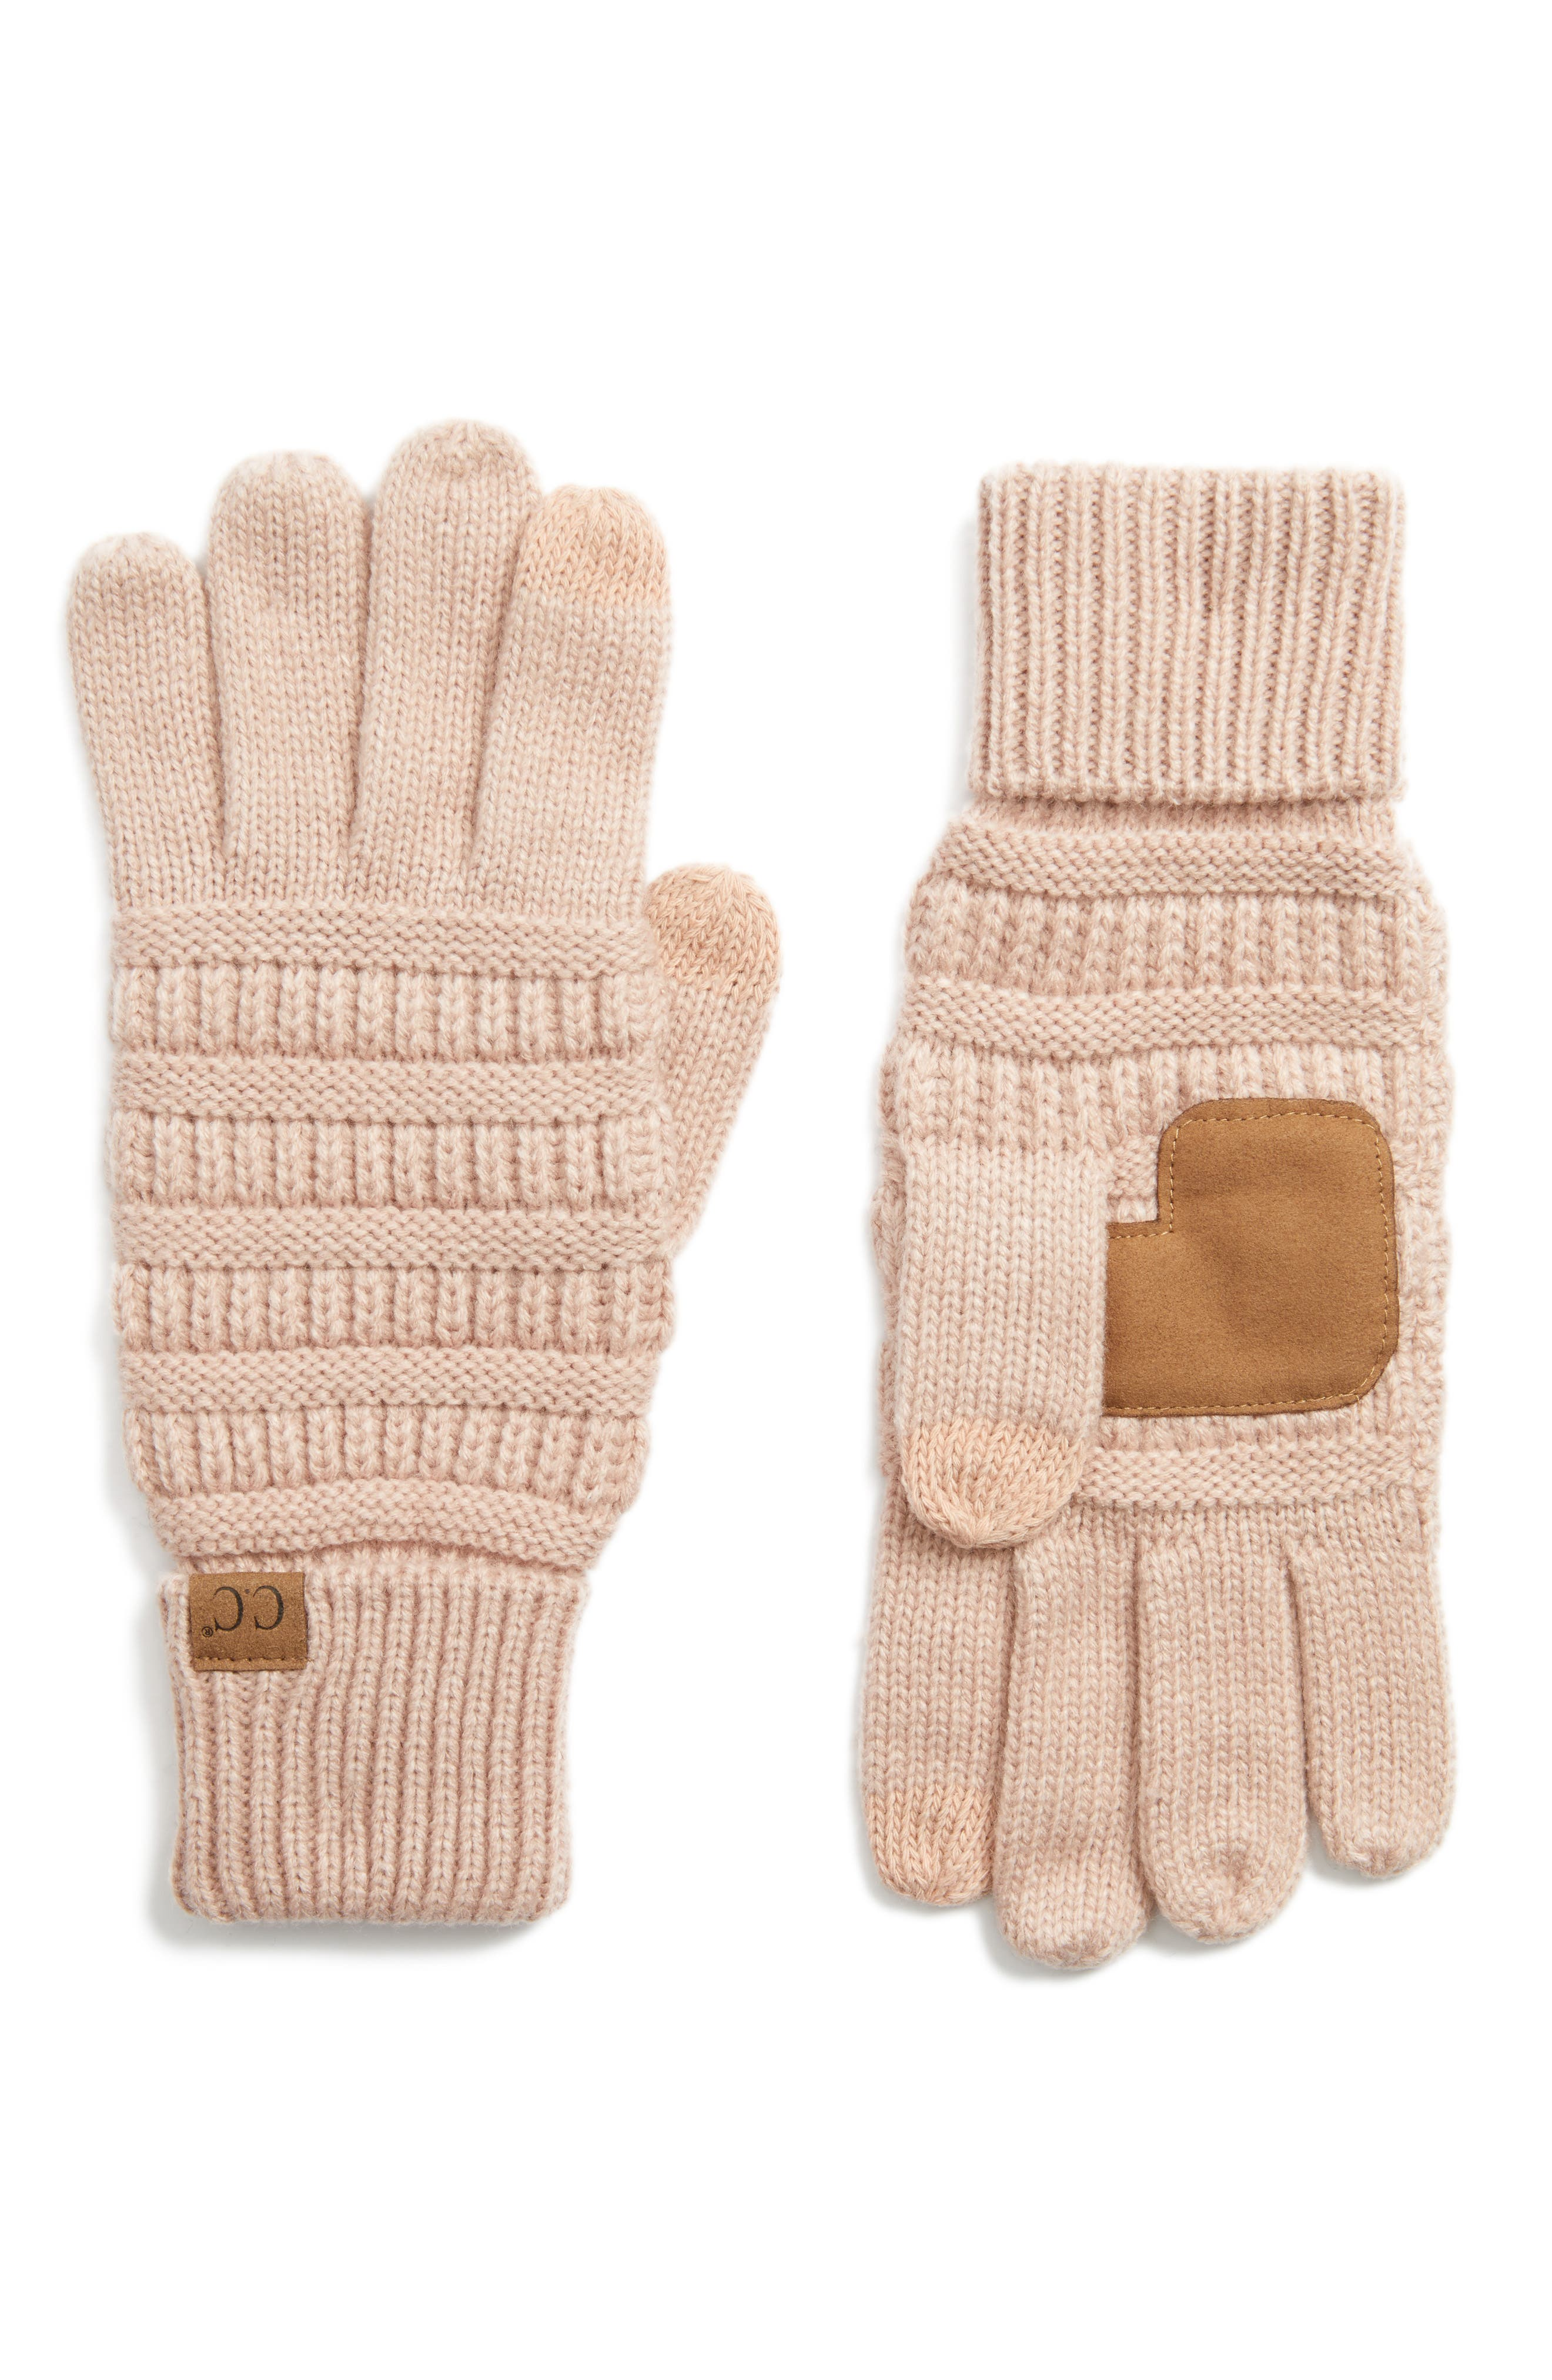 Alternate Image 1 Selected - CC Rib Knit Tech Gloves